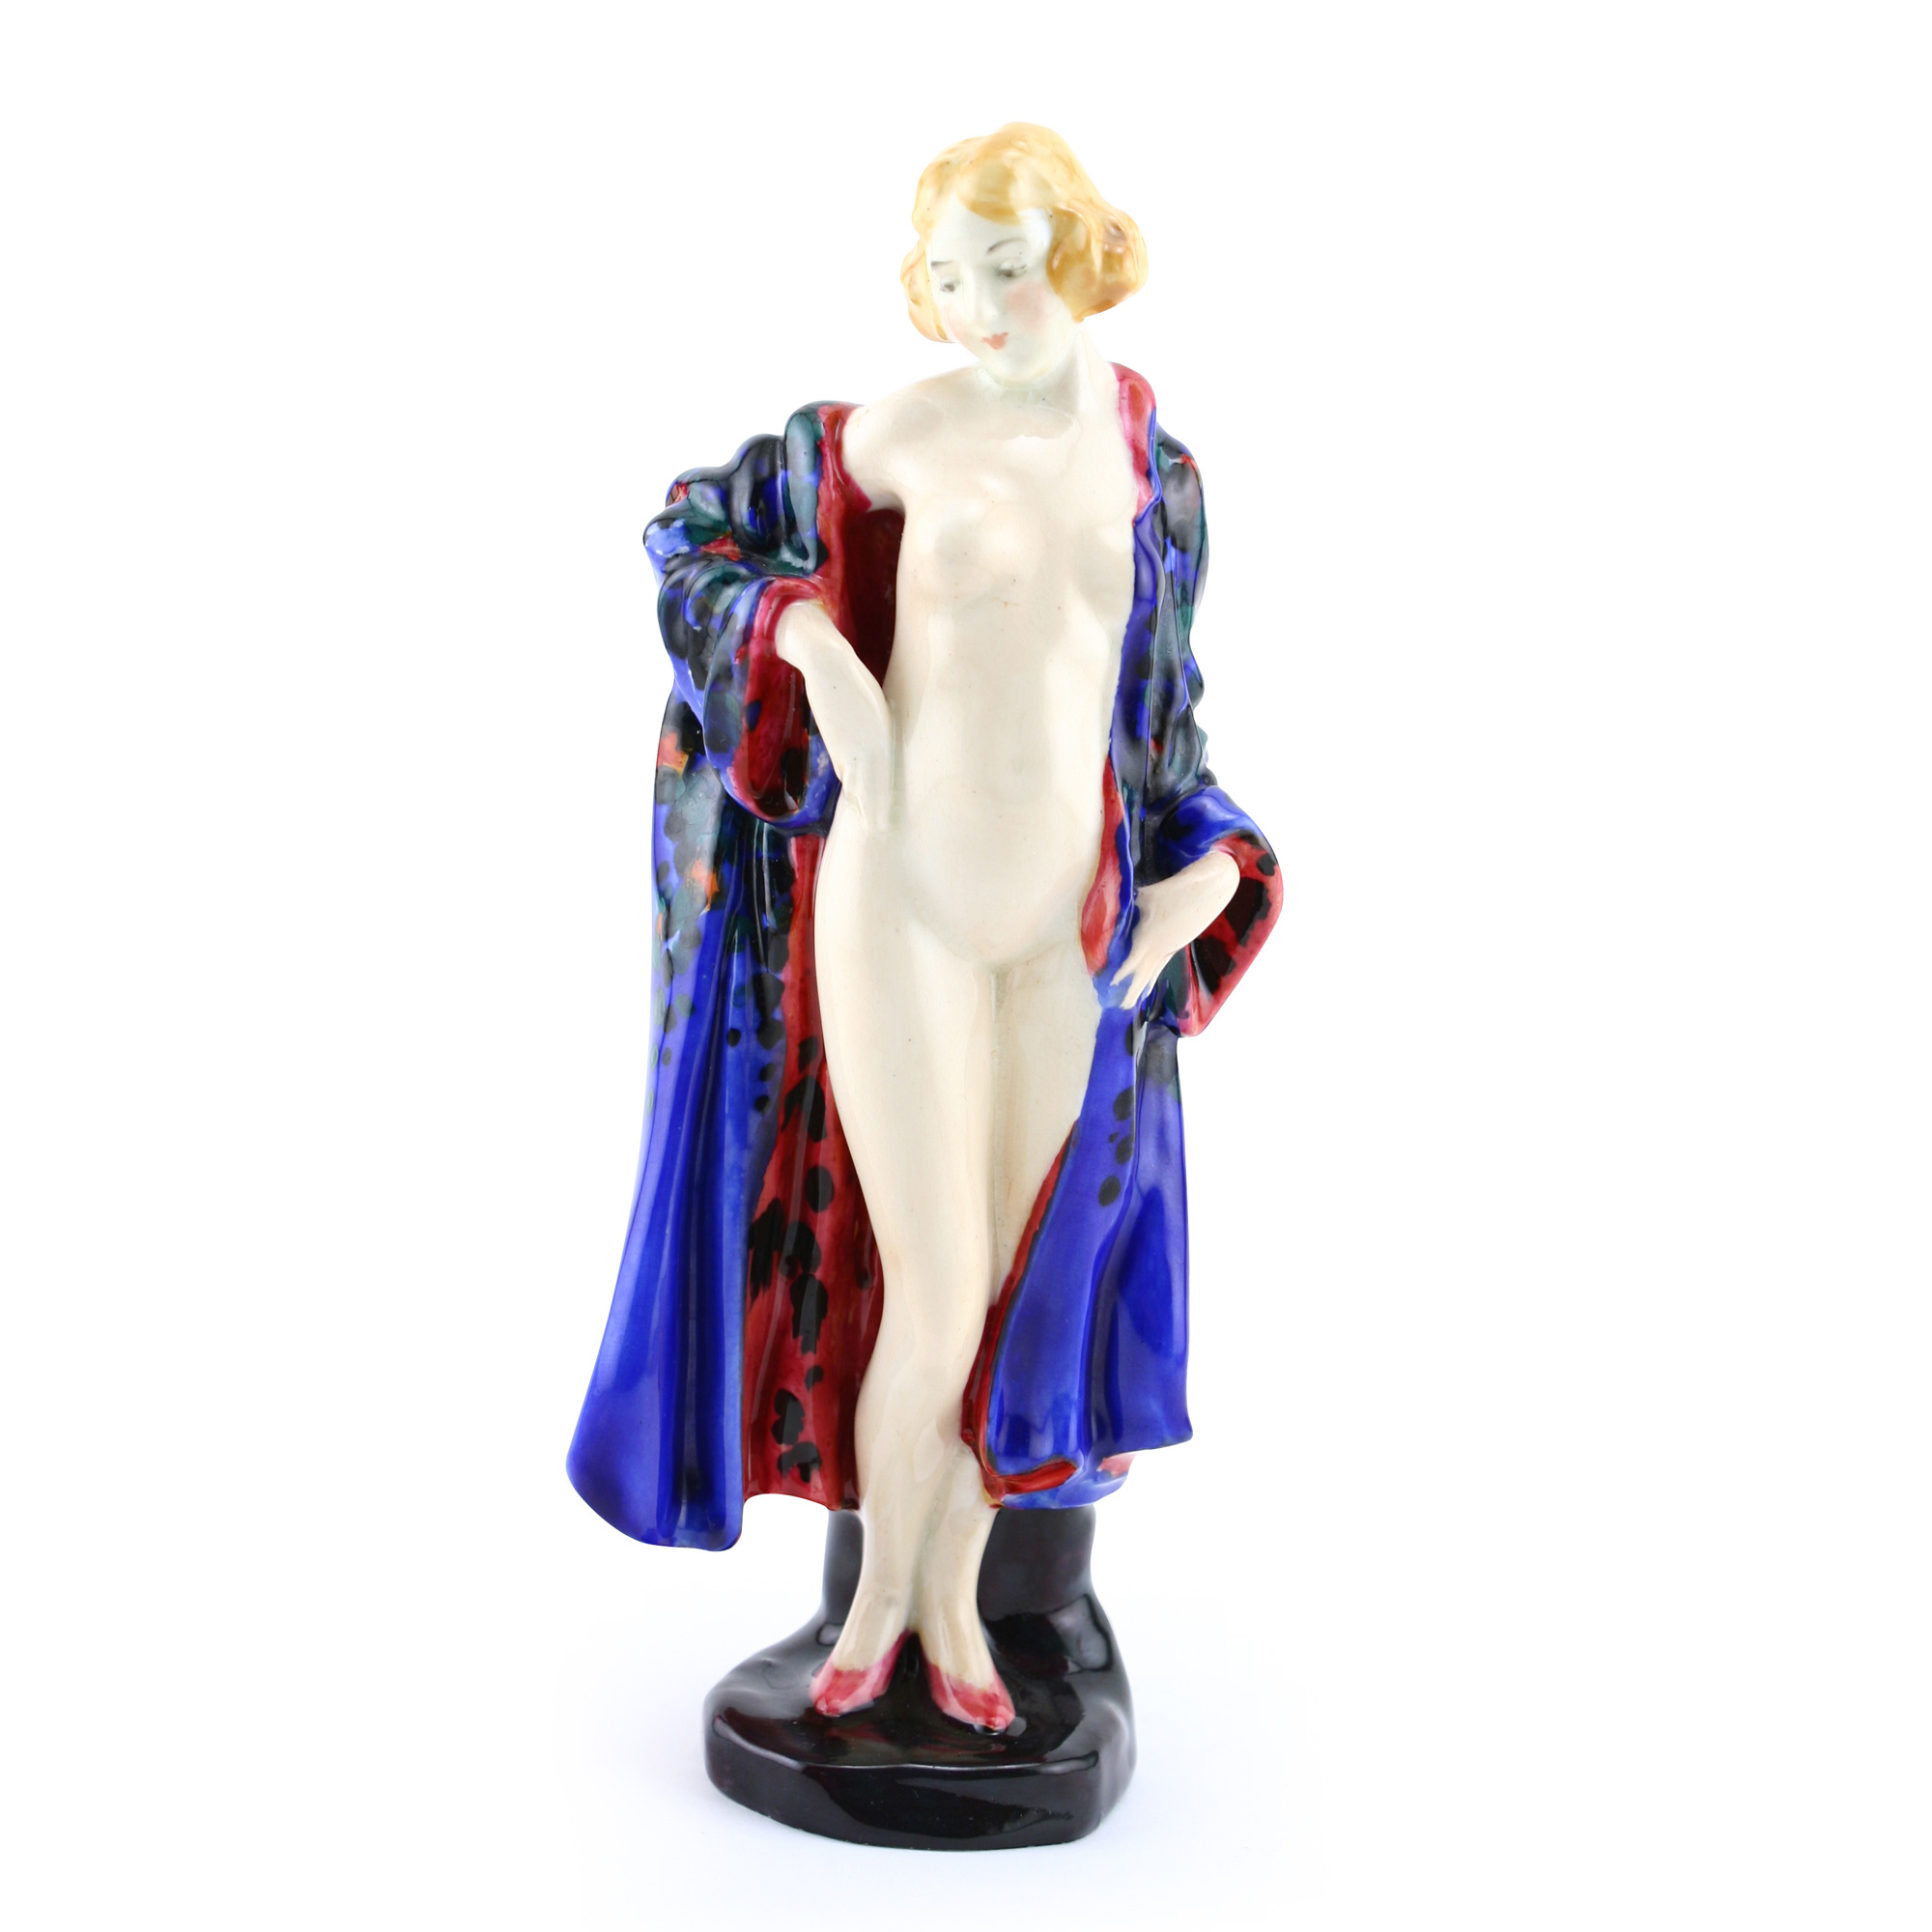 Bather - Royal Doulton Figurine